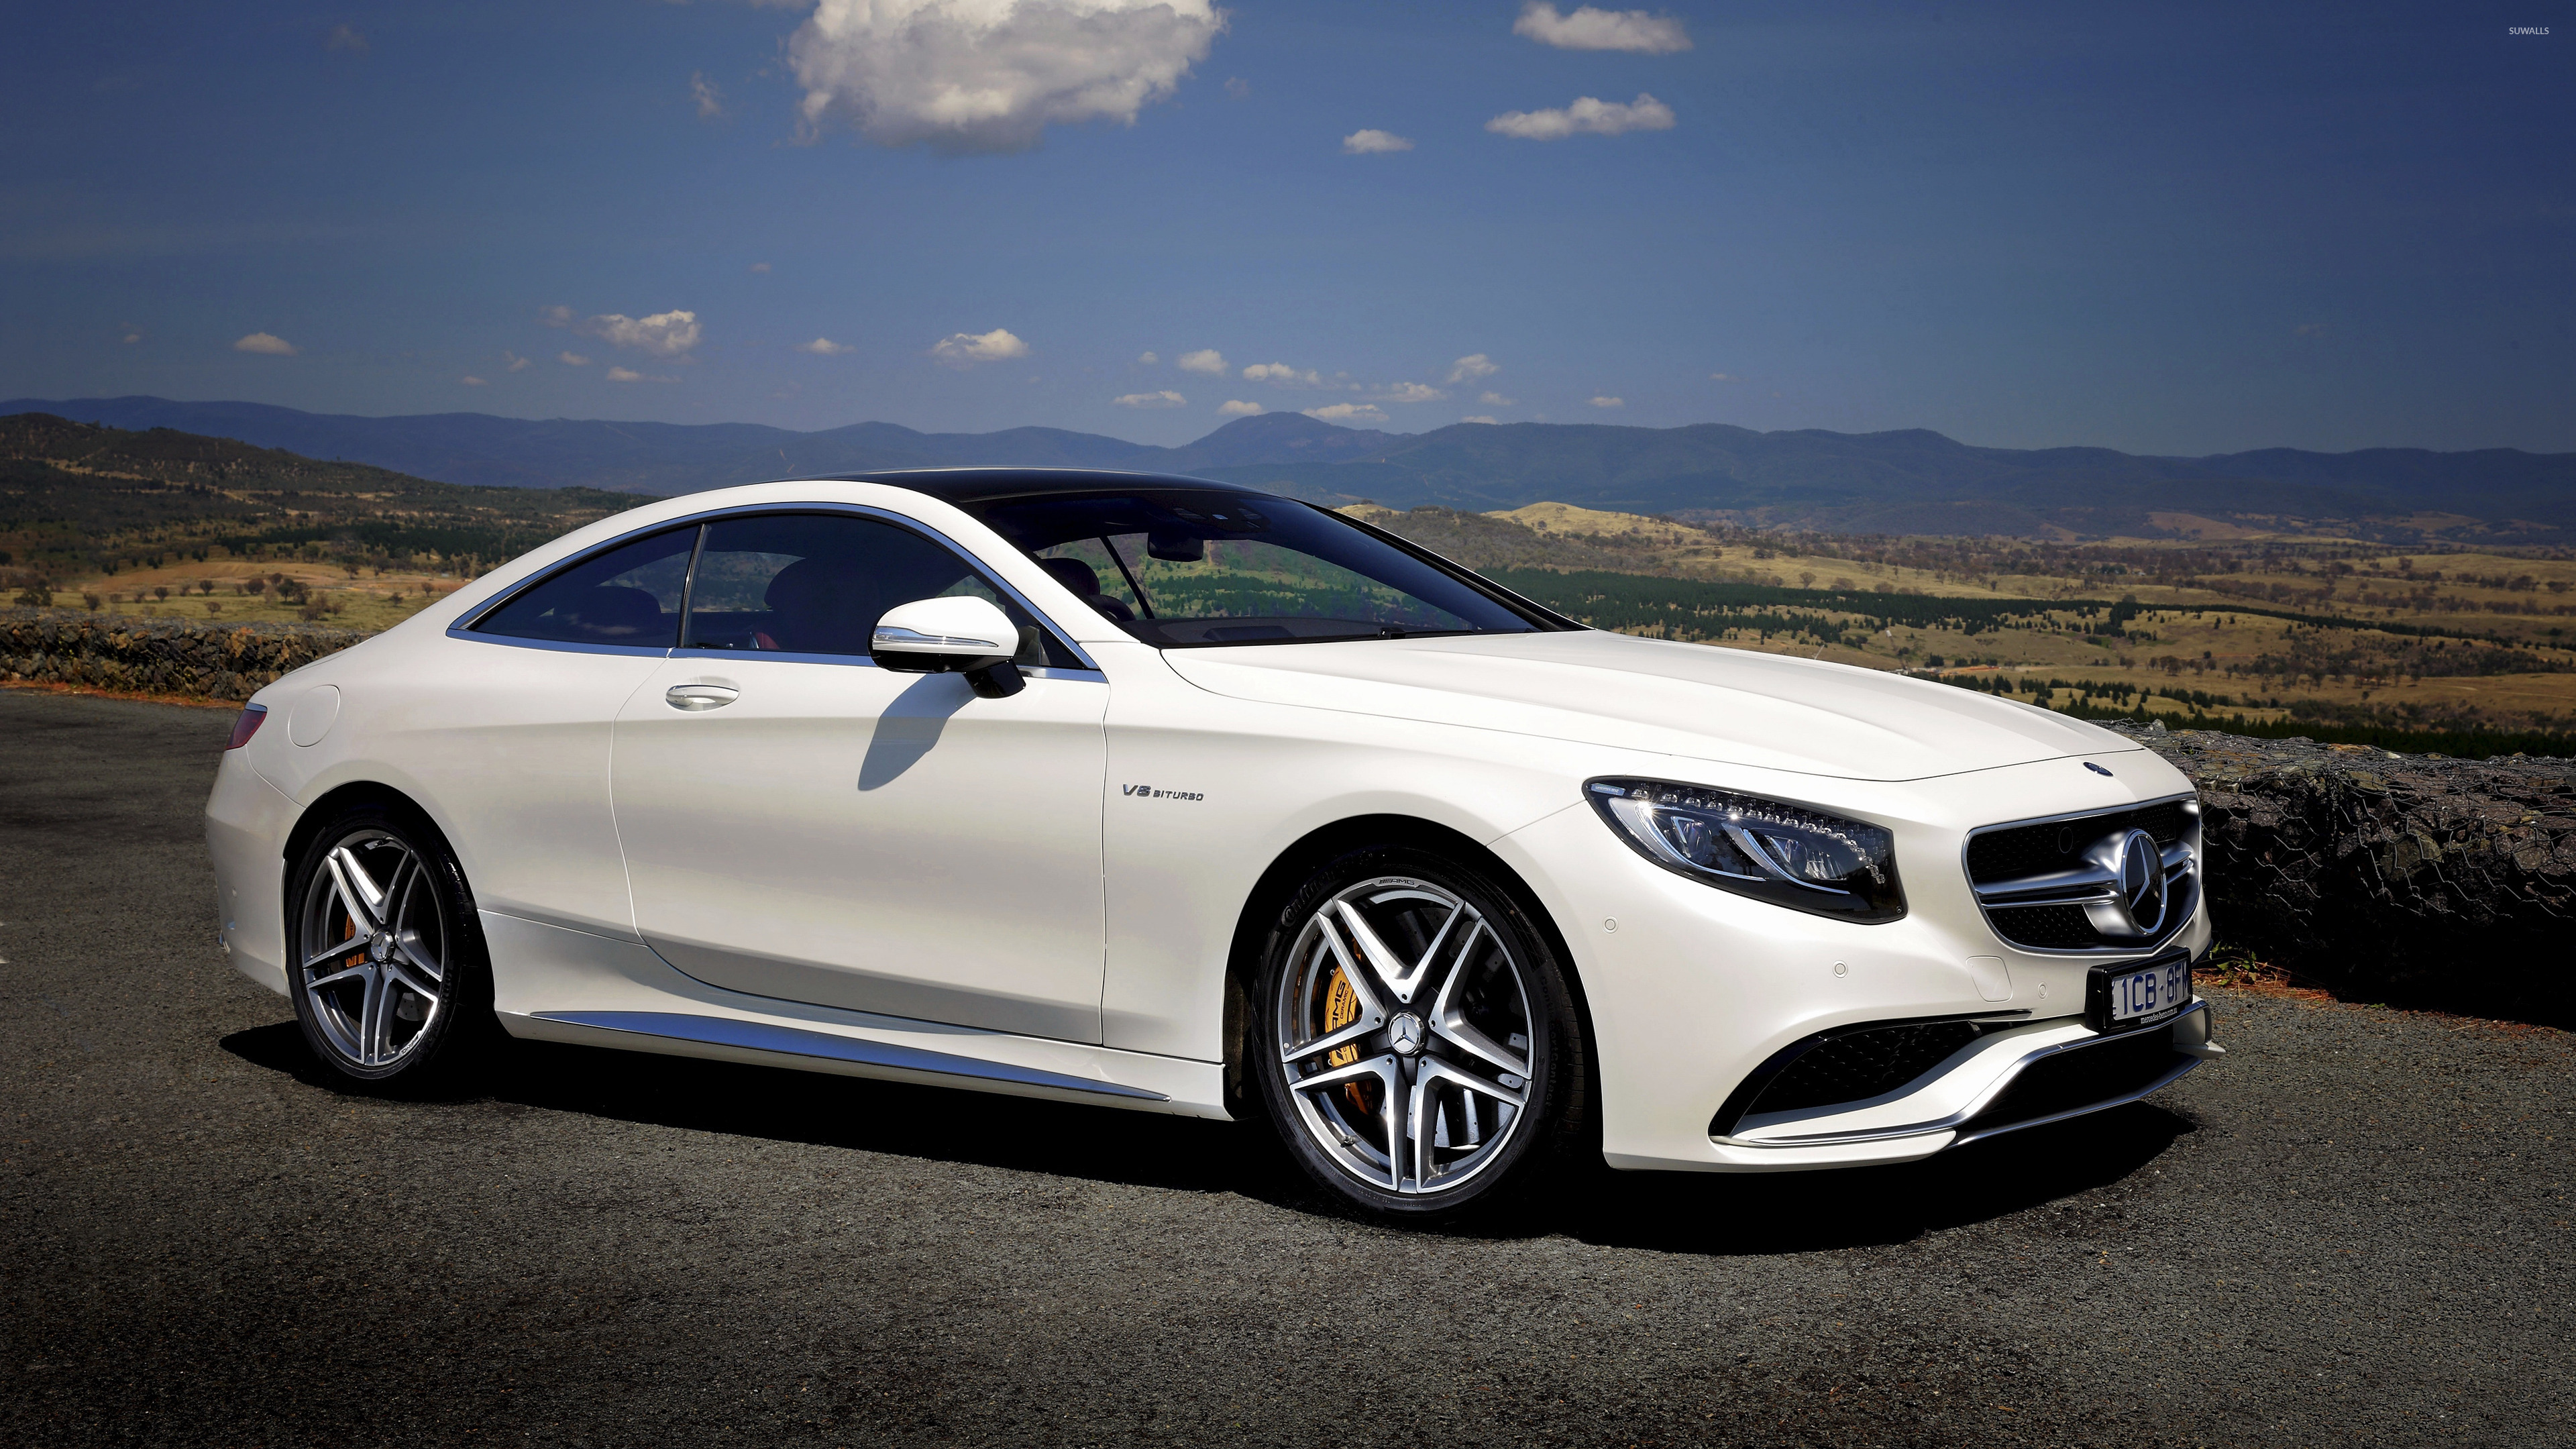 Mercedes benz s63 amg luxury sports sedan wallpapers 46 for Mercedes benz s63 amg biturbo